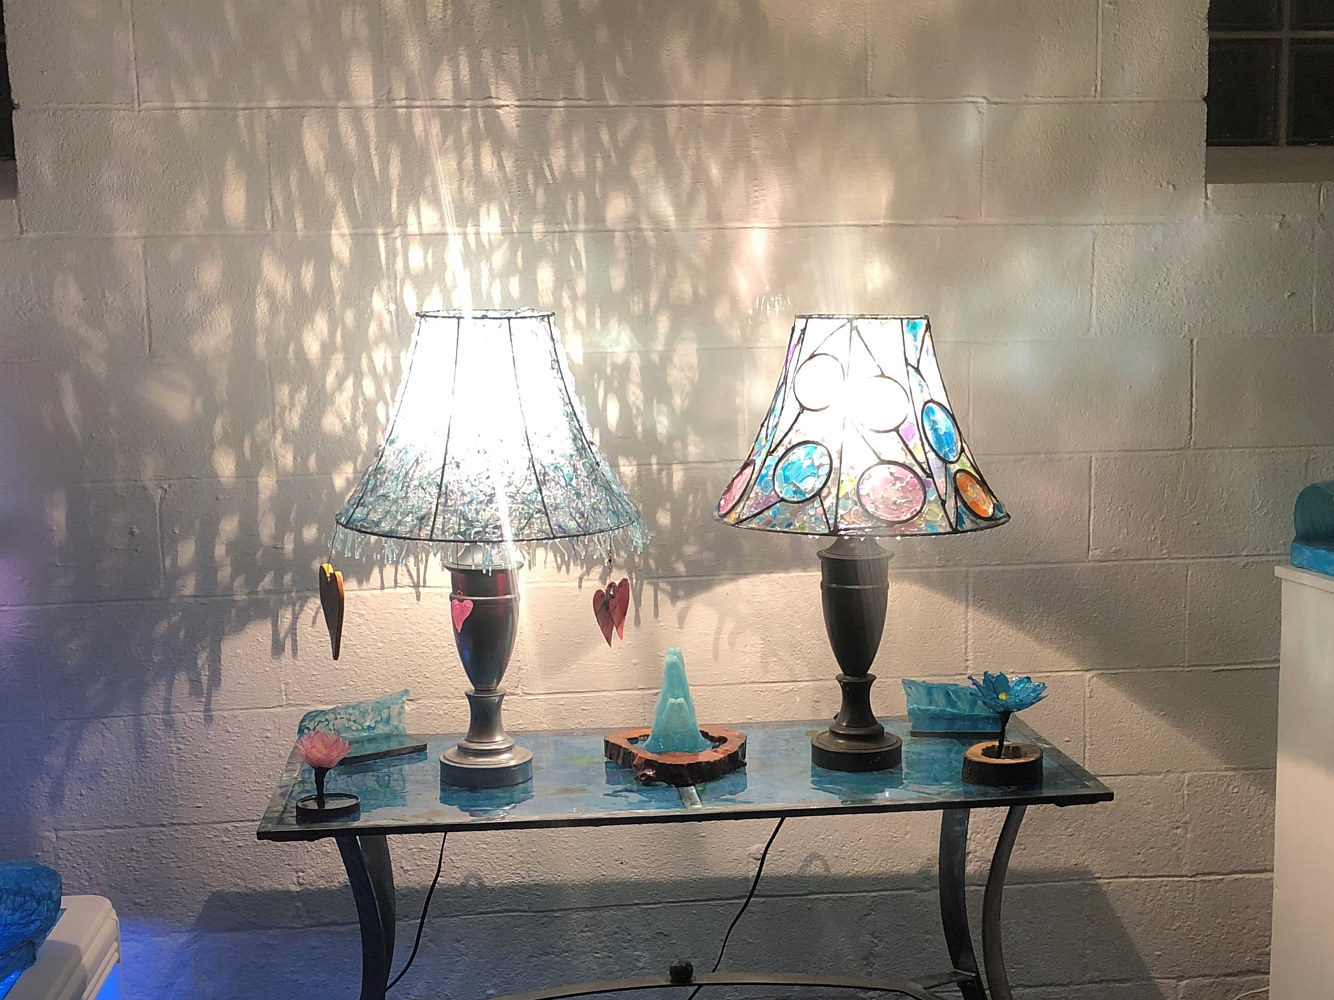 Steel and Fiberblass Table 2 with Lampshades by Steven Simmons